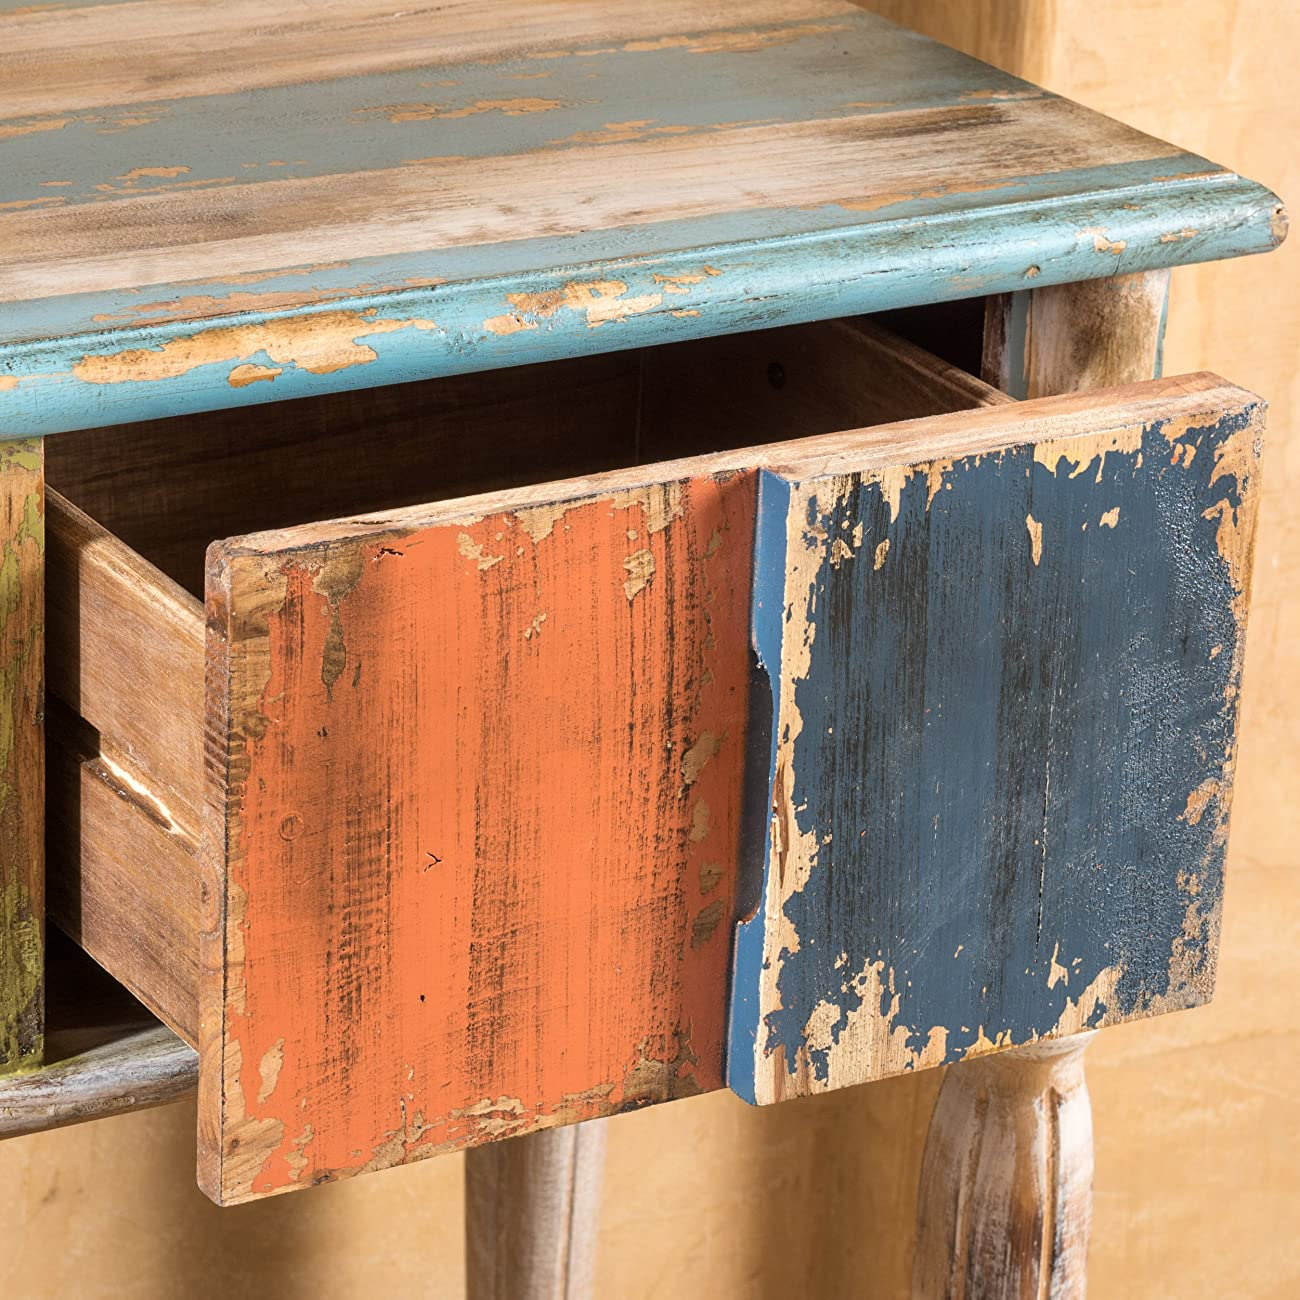 Leo Solid Wood 2 Drawer Console Table in Antique Weathered Multi-Color Style 3